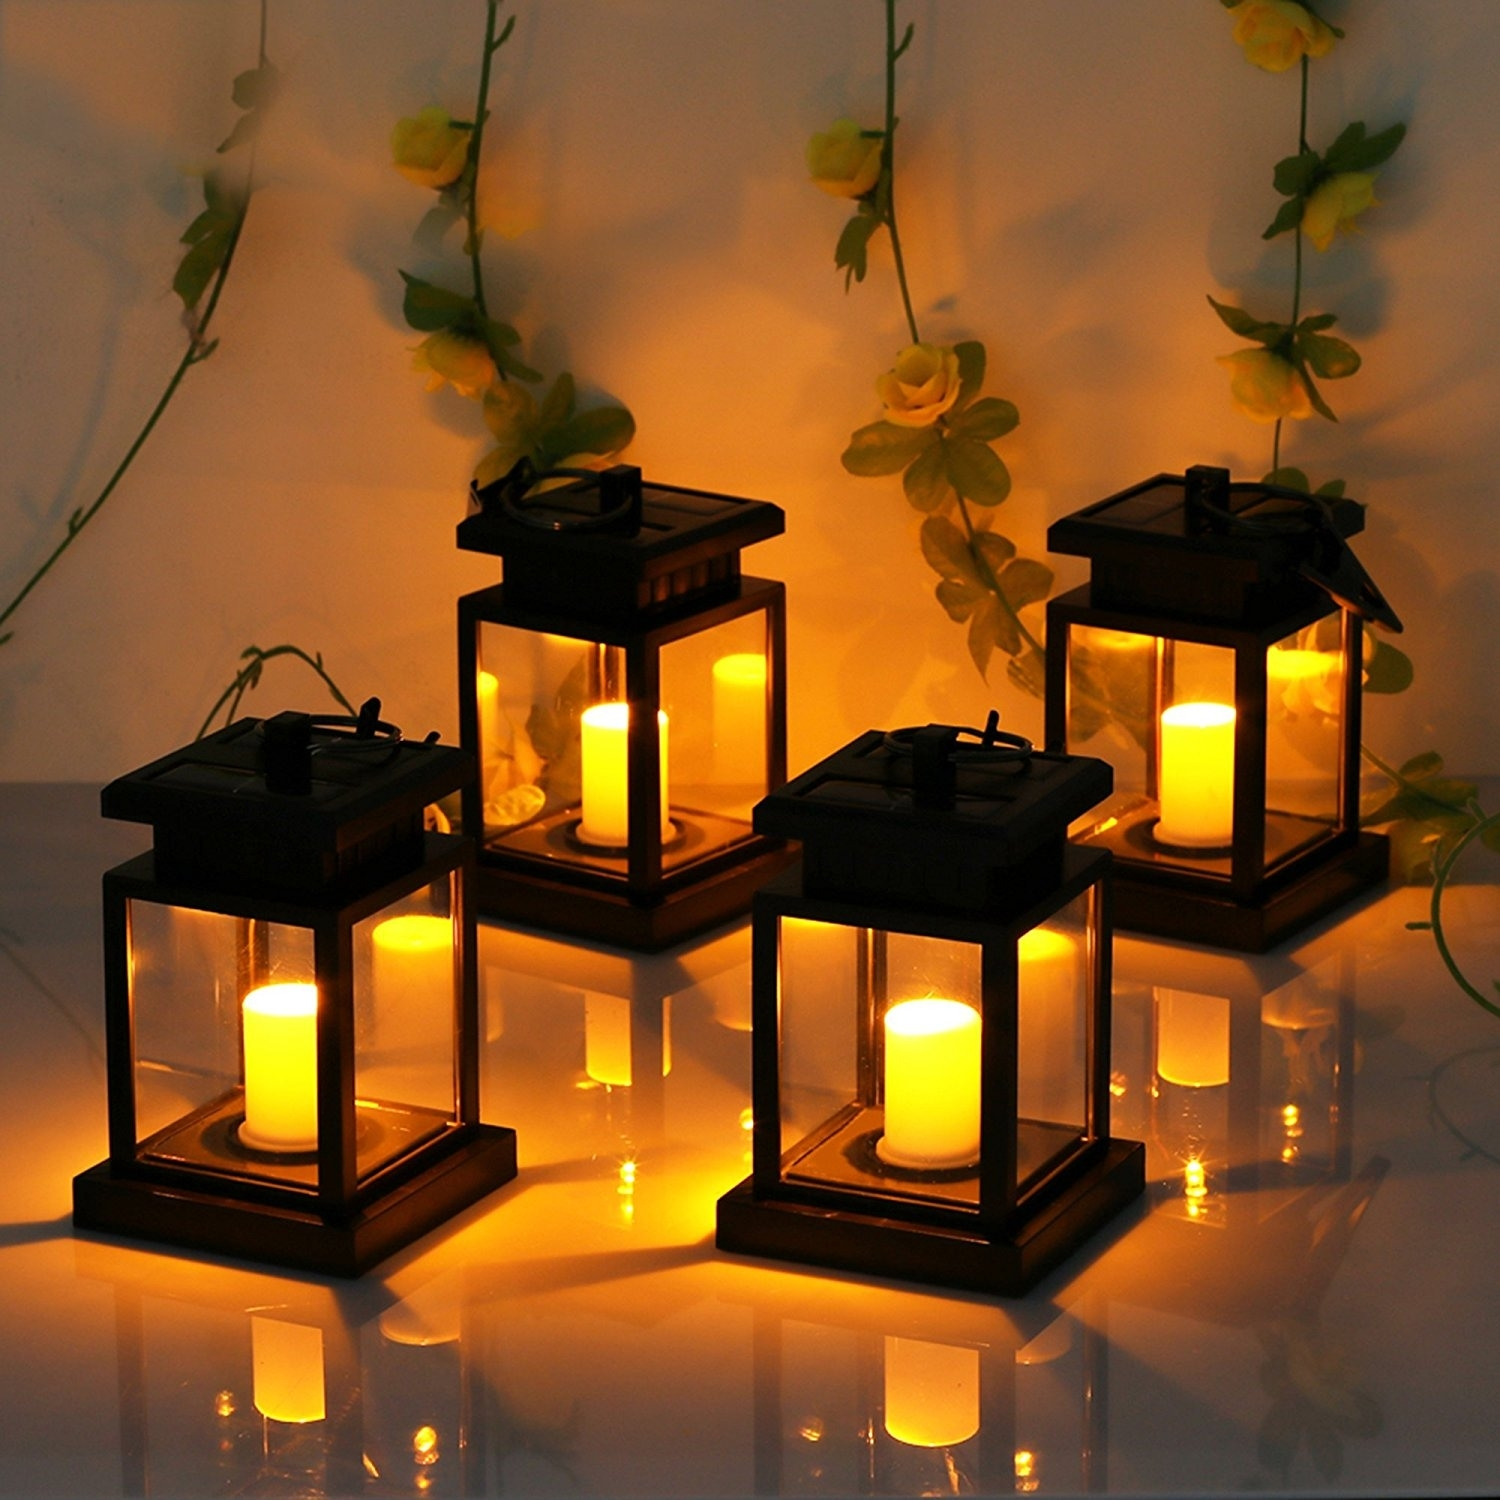 Lvjing Solar Lights Outdoor Hanging Lantern 4 Pack Led From Cute With Regard To Outdoor Hanging Japanese Lanterns (View 13 of 20)